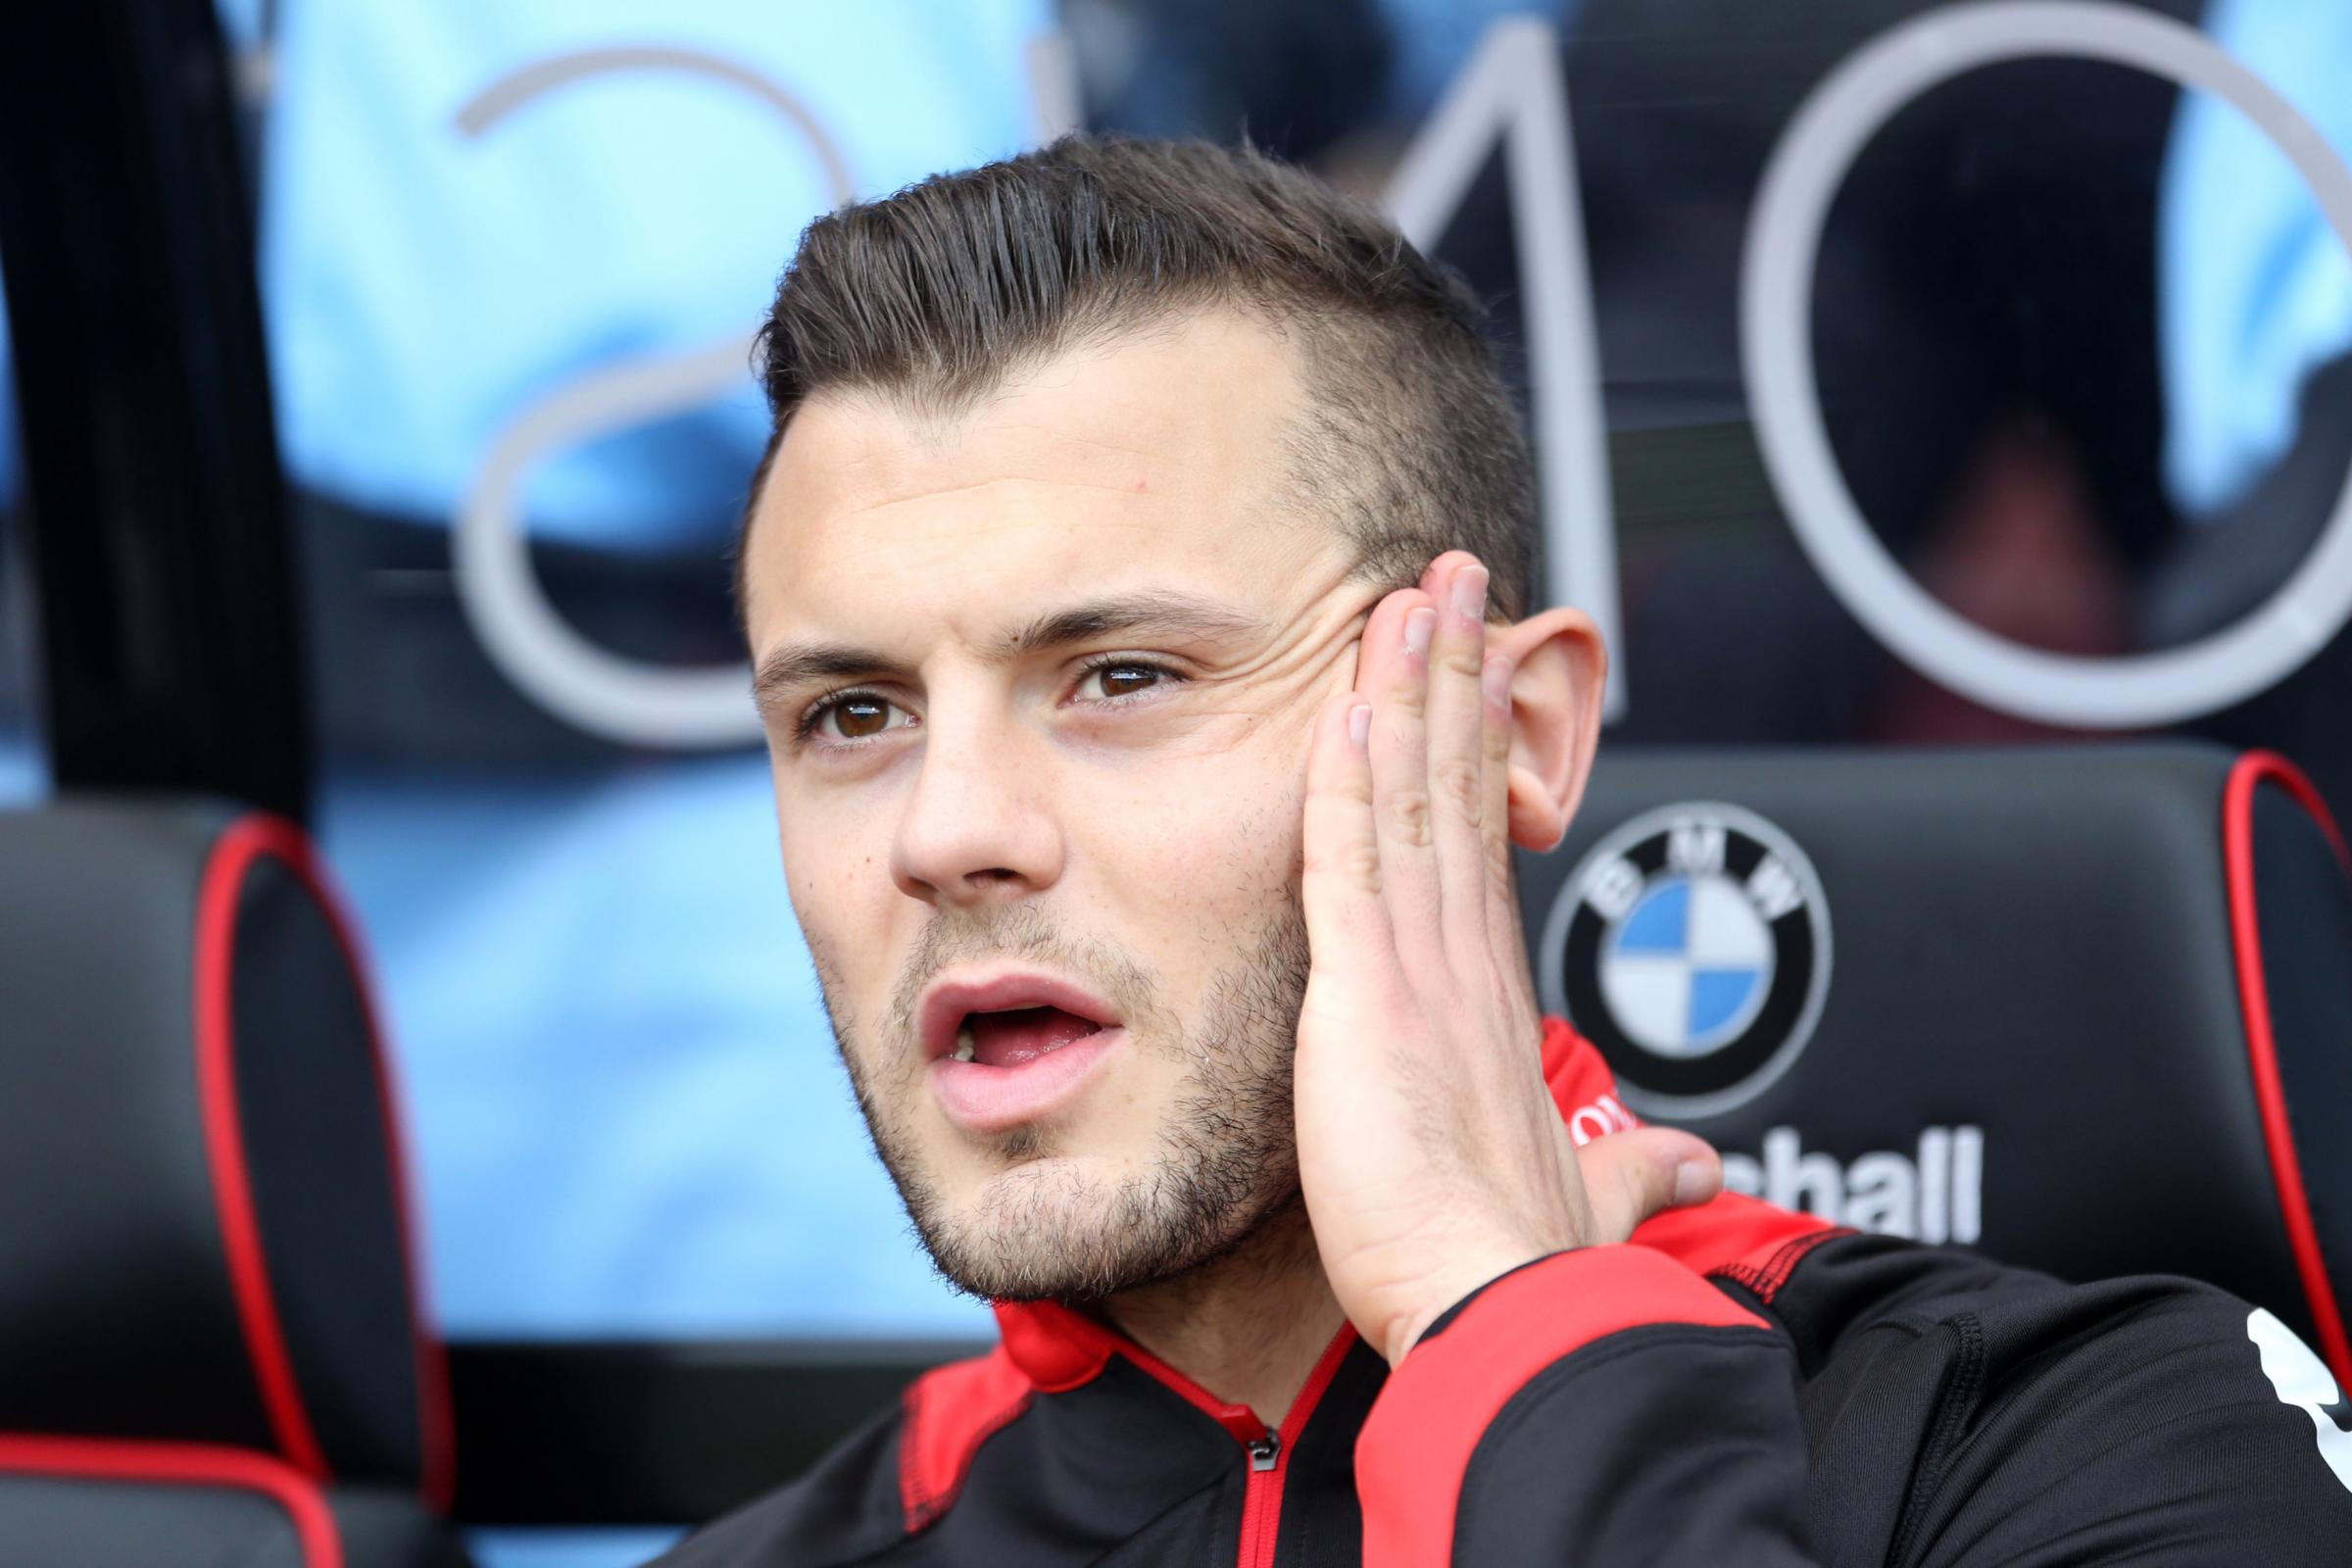 Harry Redknapp hails 'fantastic footballer' Wilshere - and says Cherries could look at him